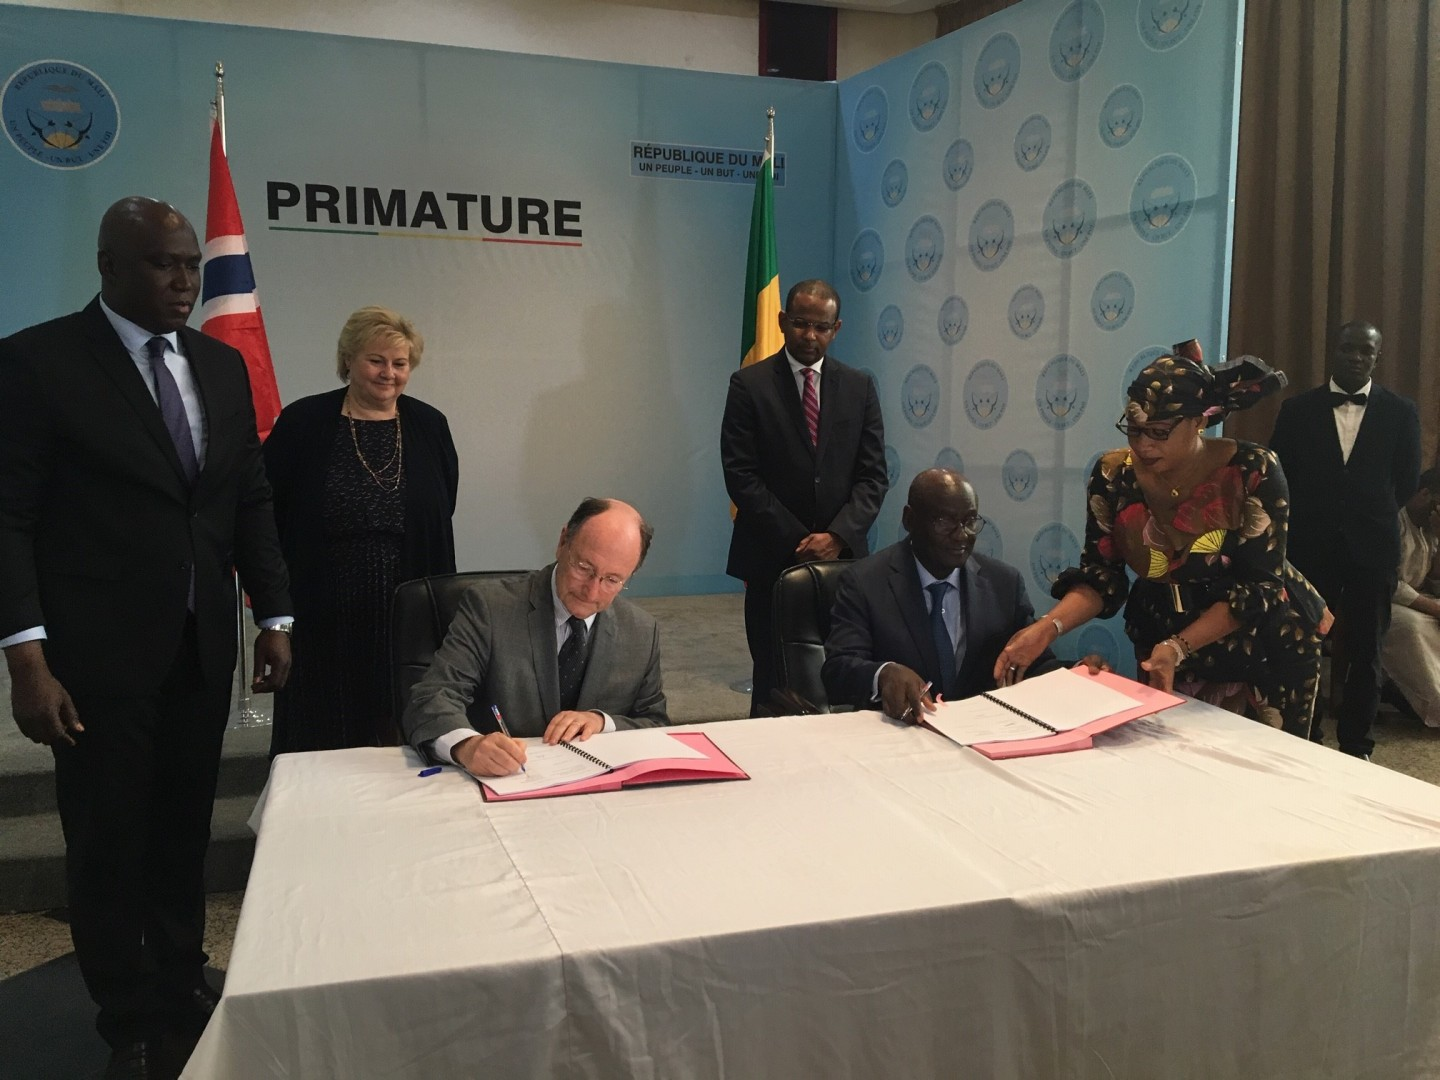 Norway and Mali's prime ministers witnessed the deal for 33MW project in Mali (Credit: Scatec Solar)